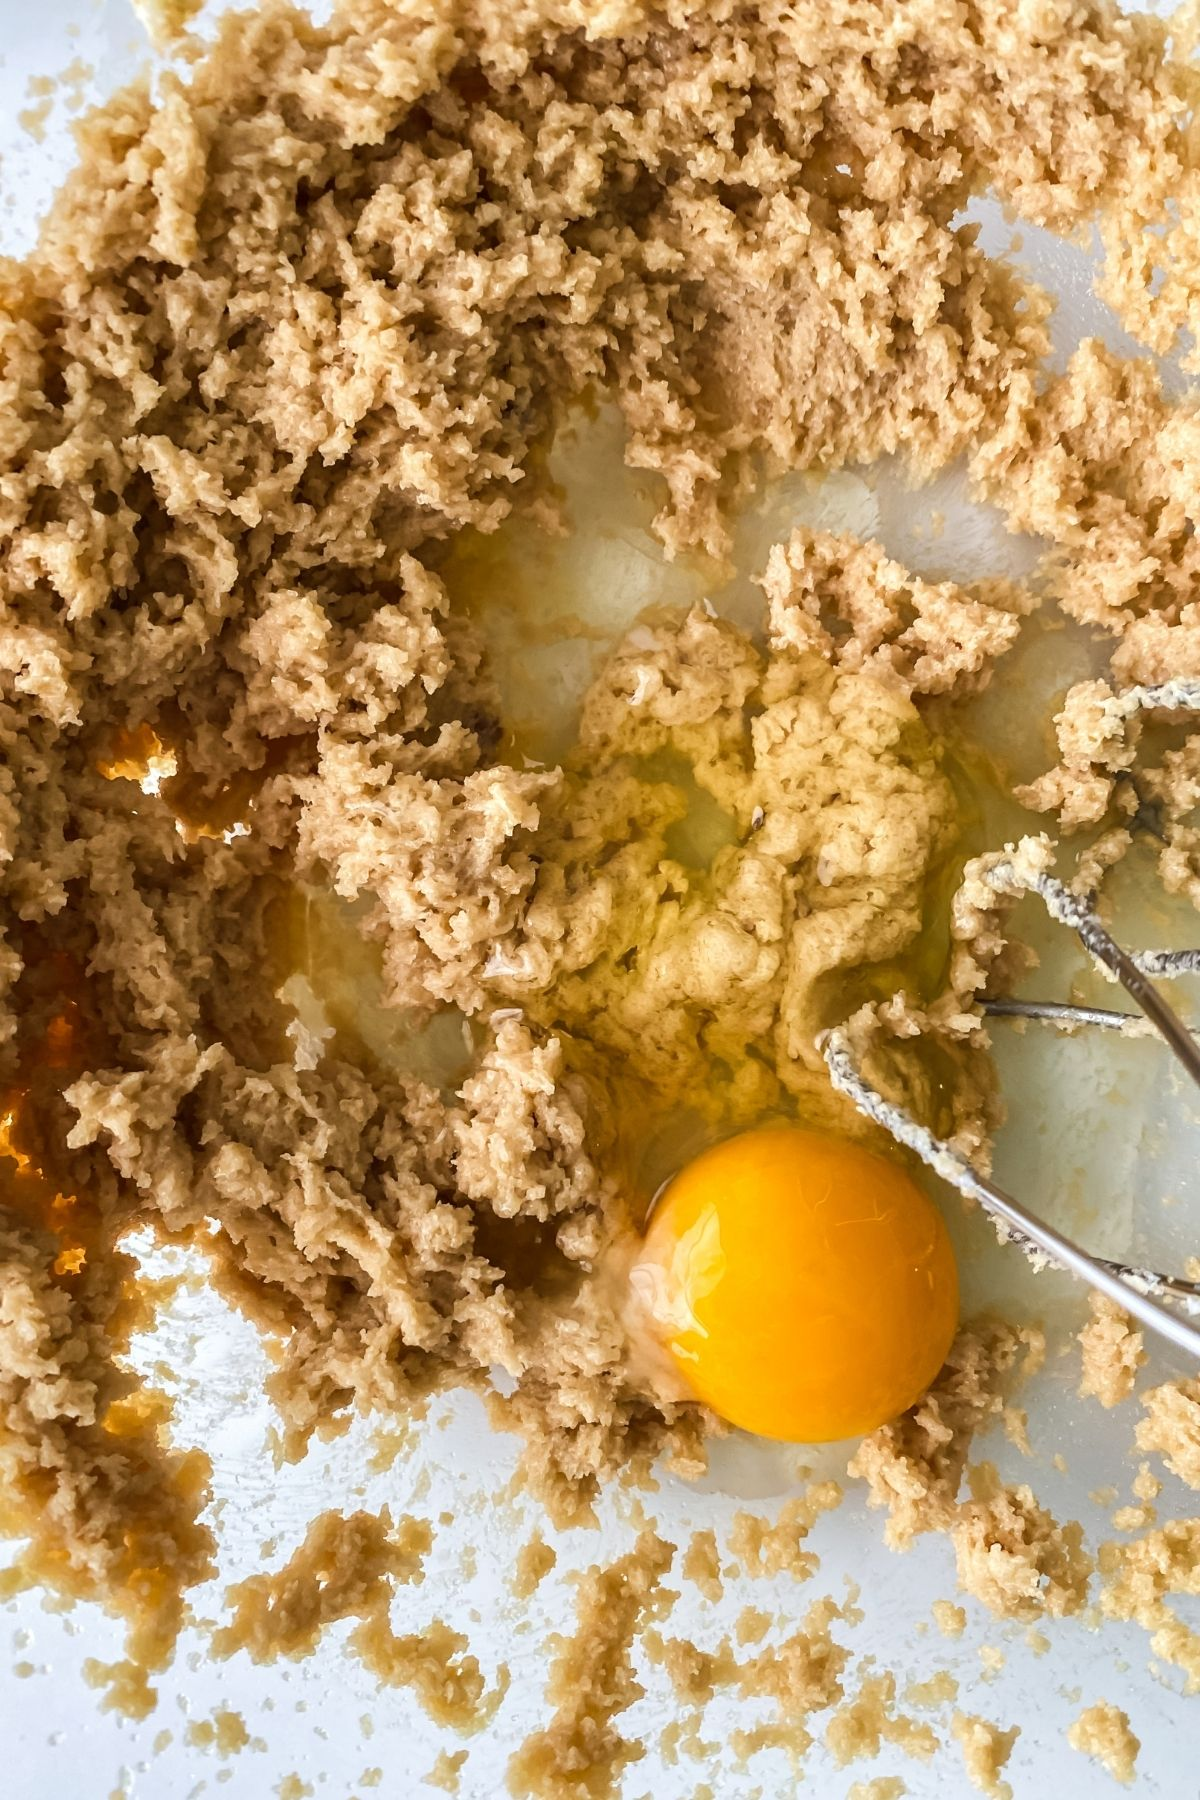 Adding eggs to creamed butter and sugar